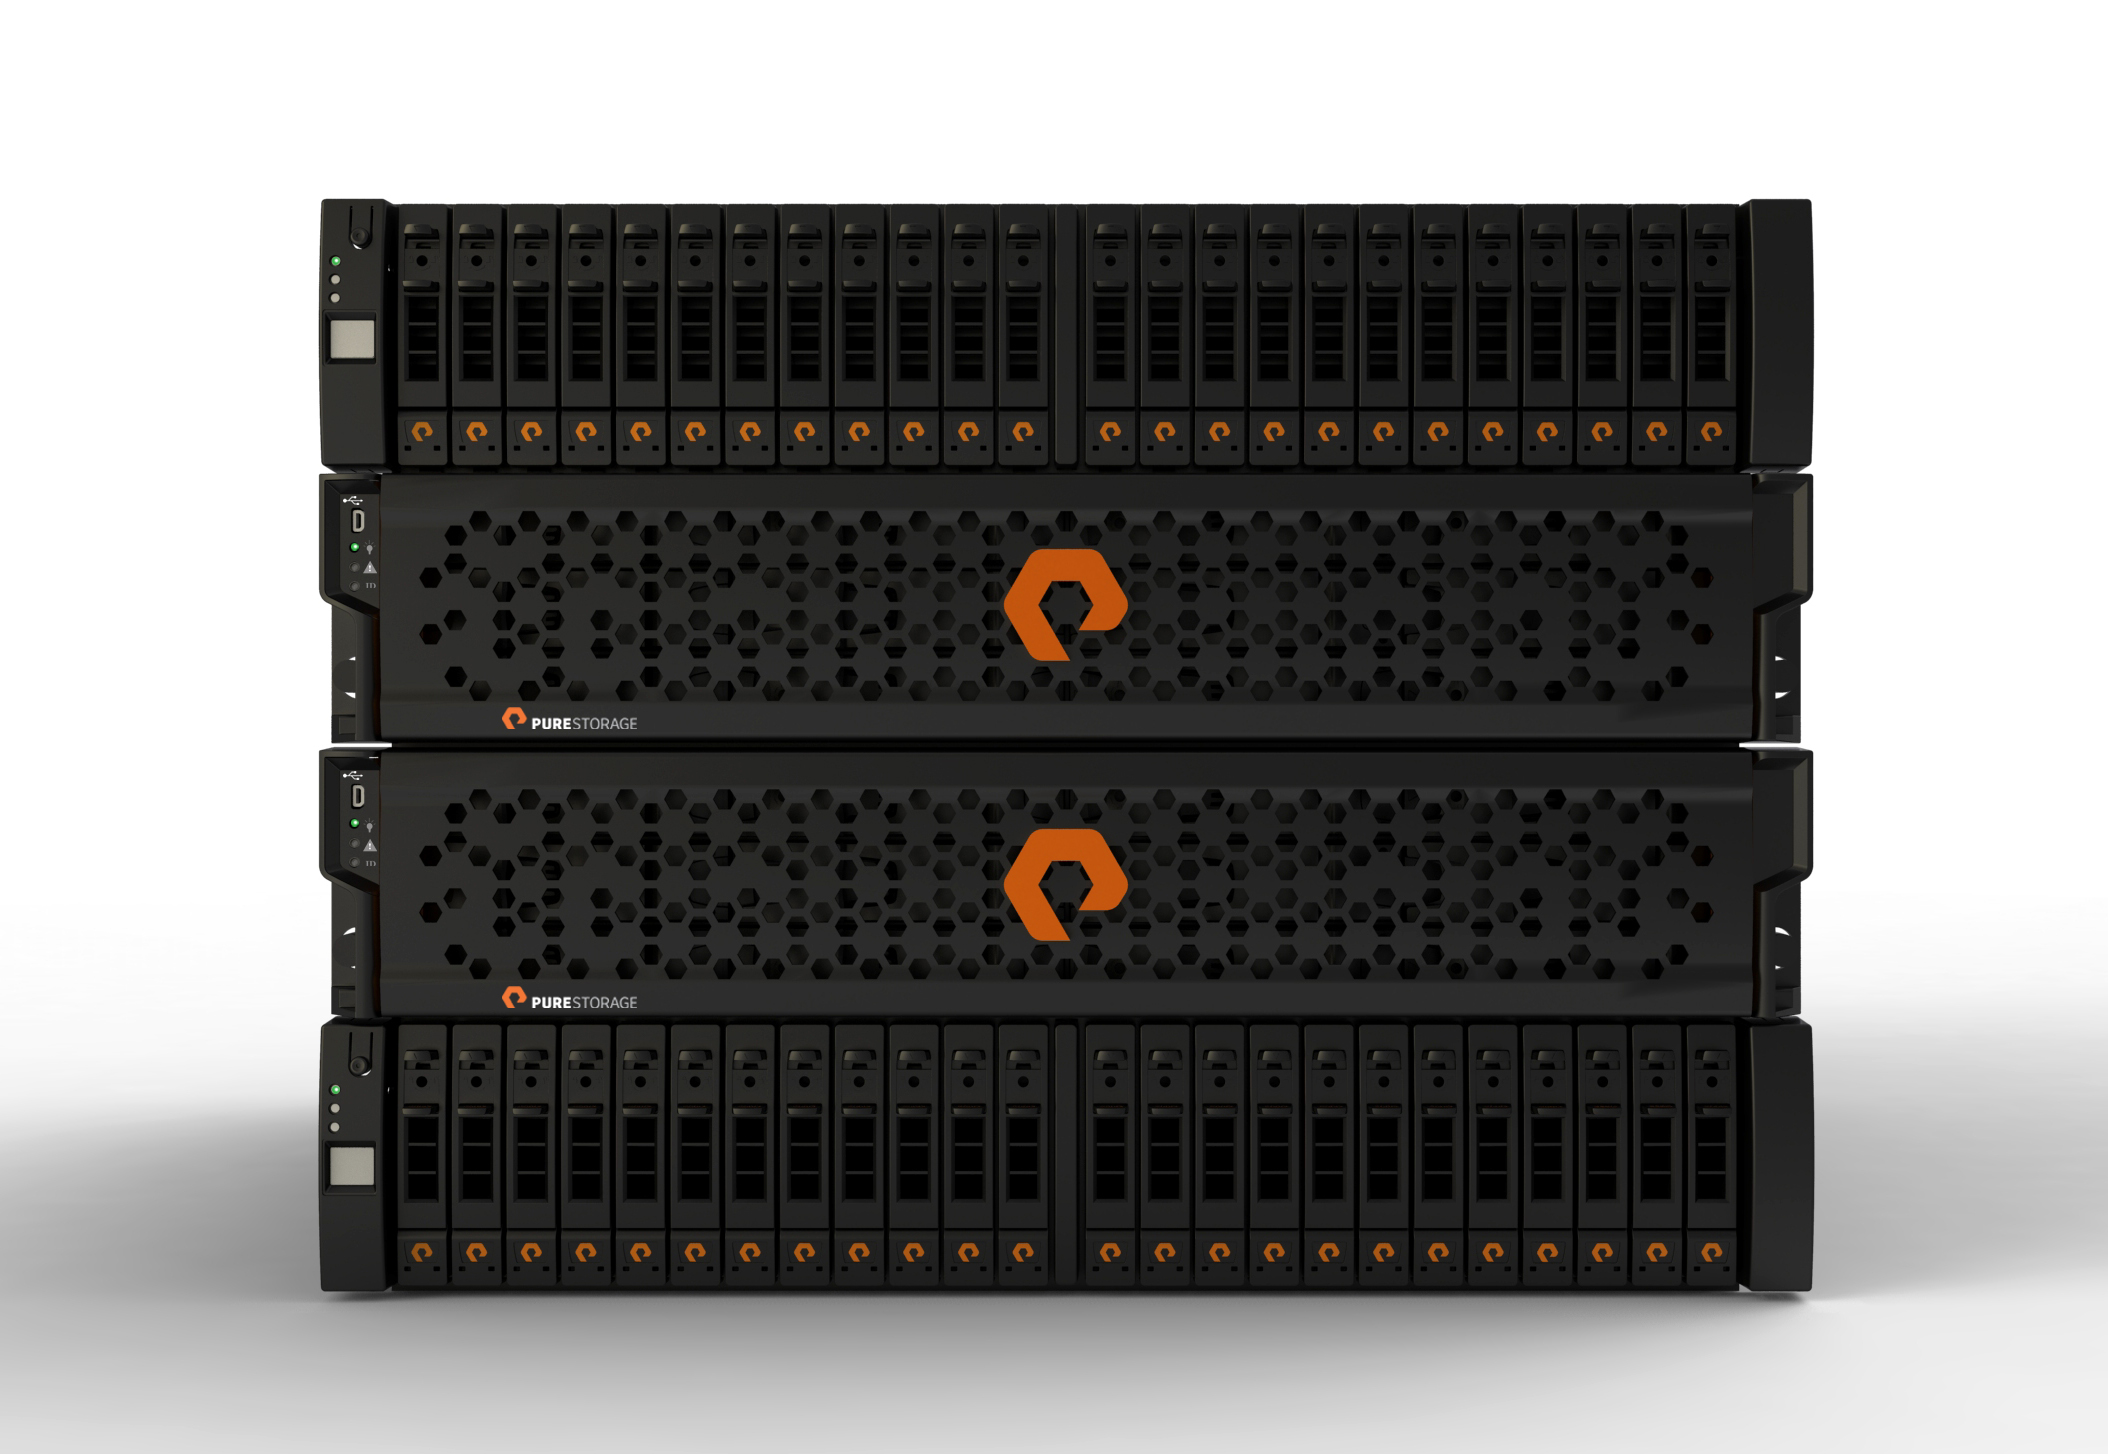 Pure Storage controllers